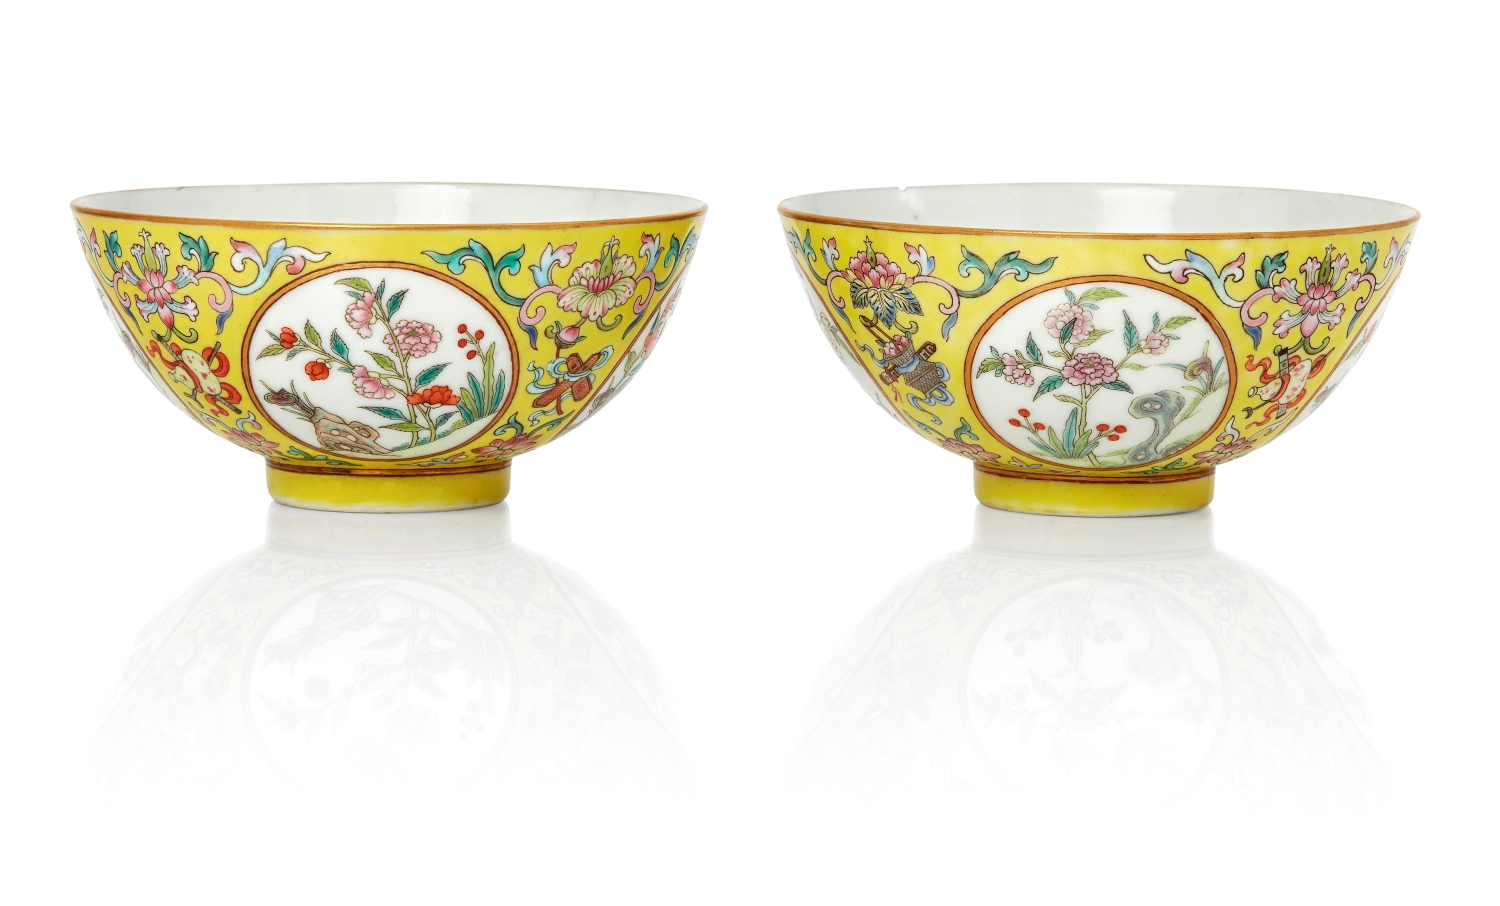 A pair of Chinese porcelain yellow-ground famille rose 'medallion' bowls, Daoguang period, circa 1831-1850